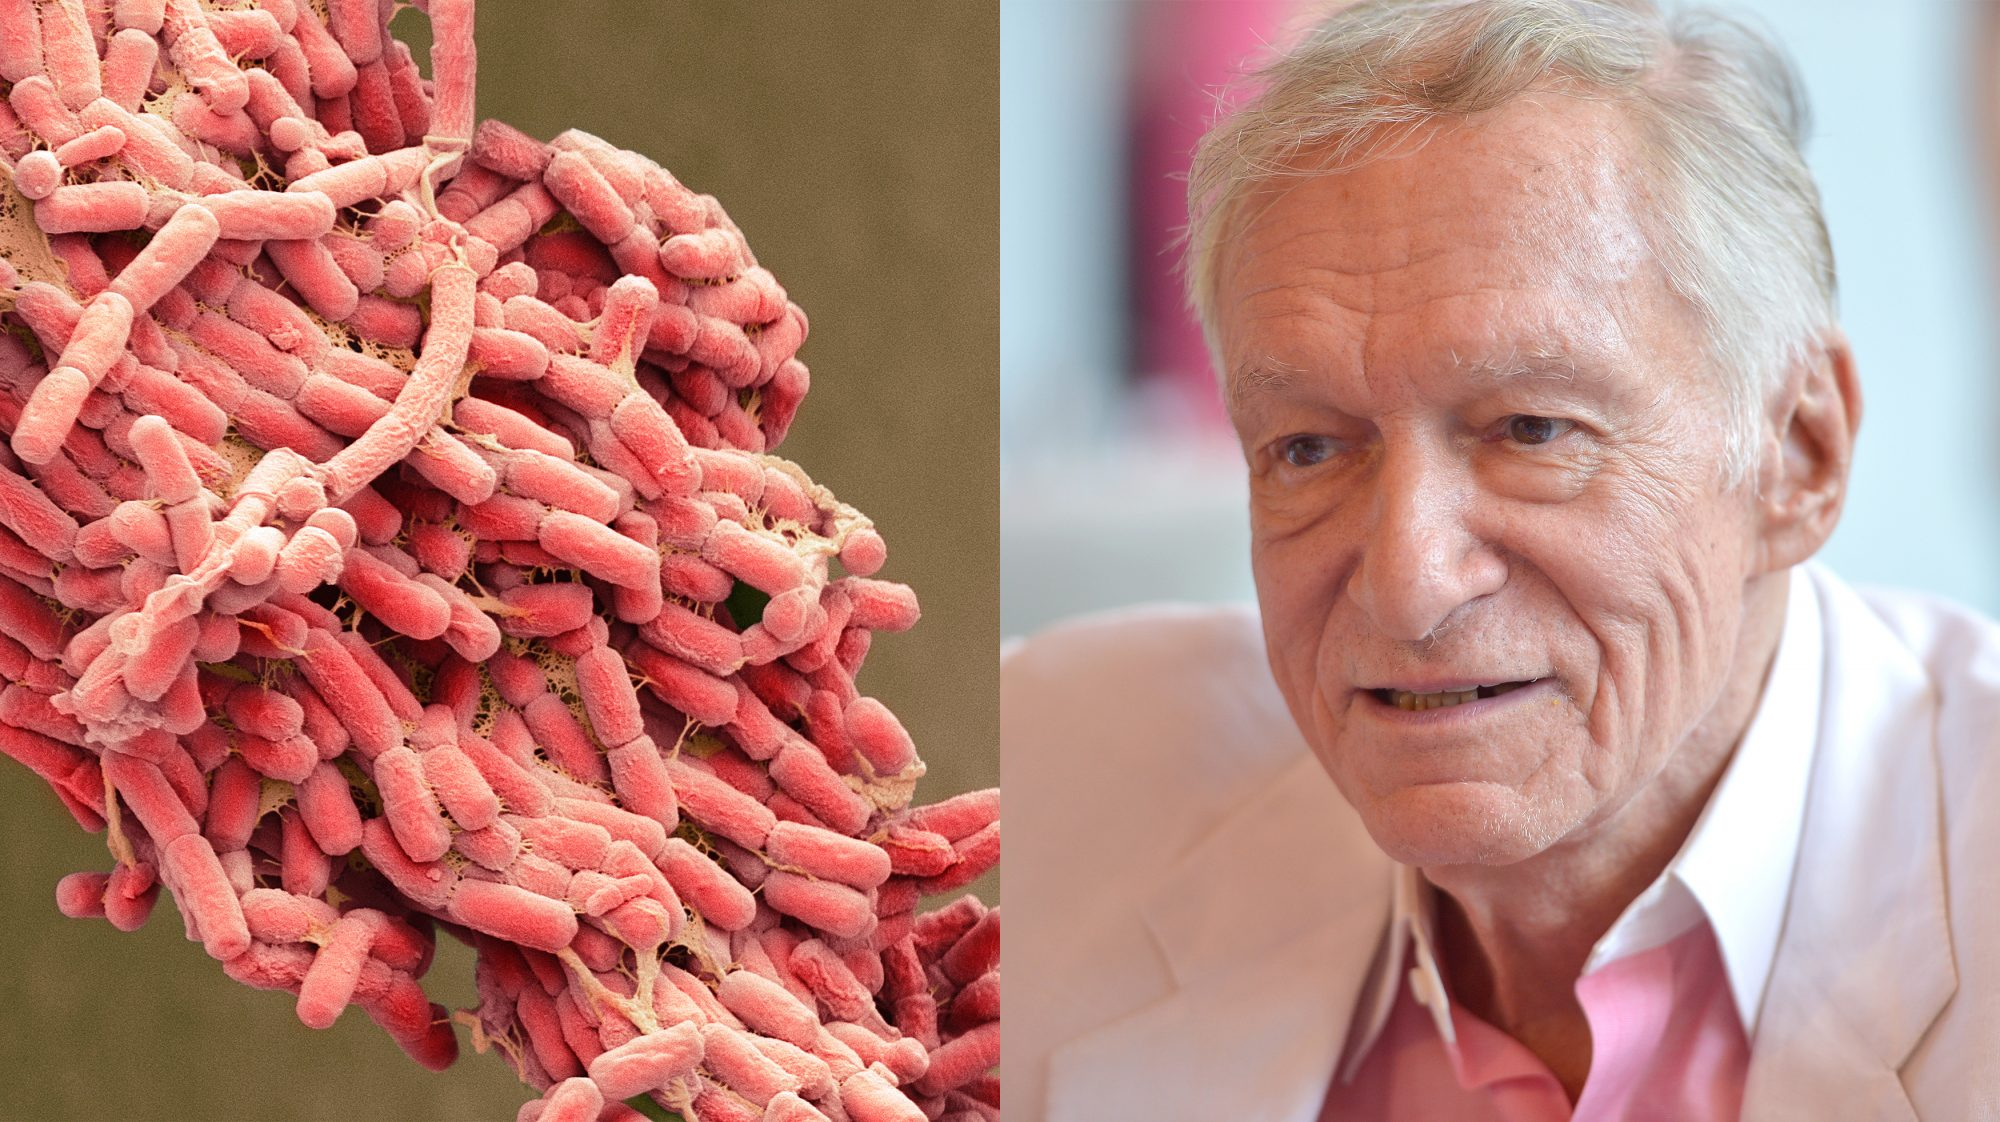 Hugh Hefner Had a Drug-Resistant E. Coli Infection. Here's What You Should Know